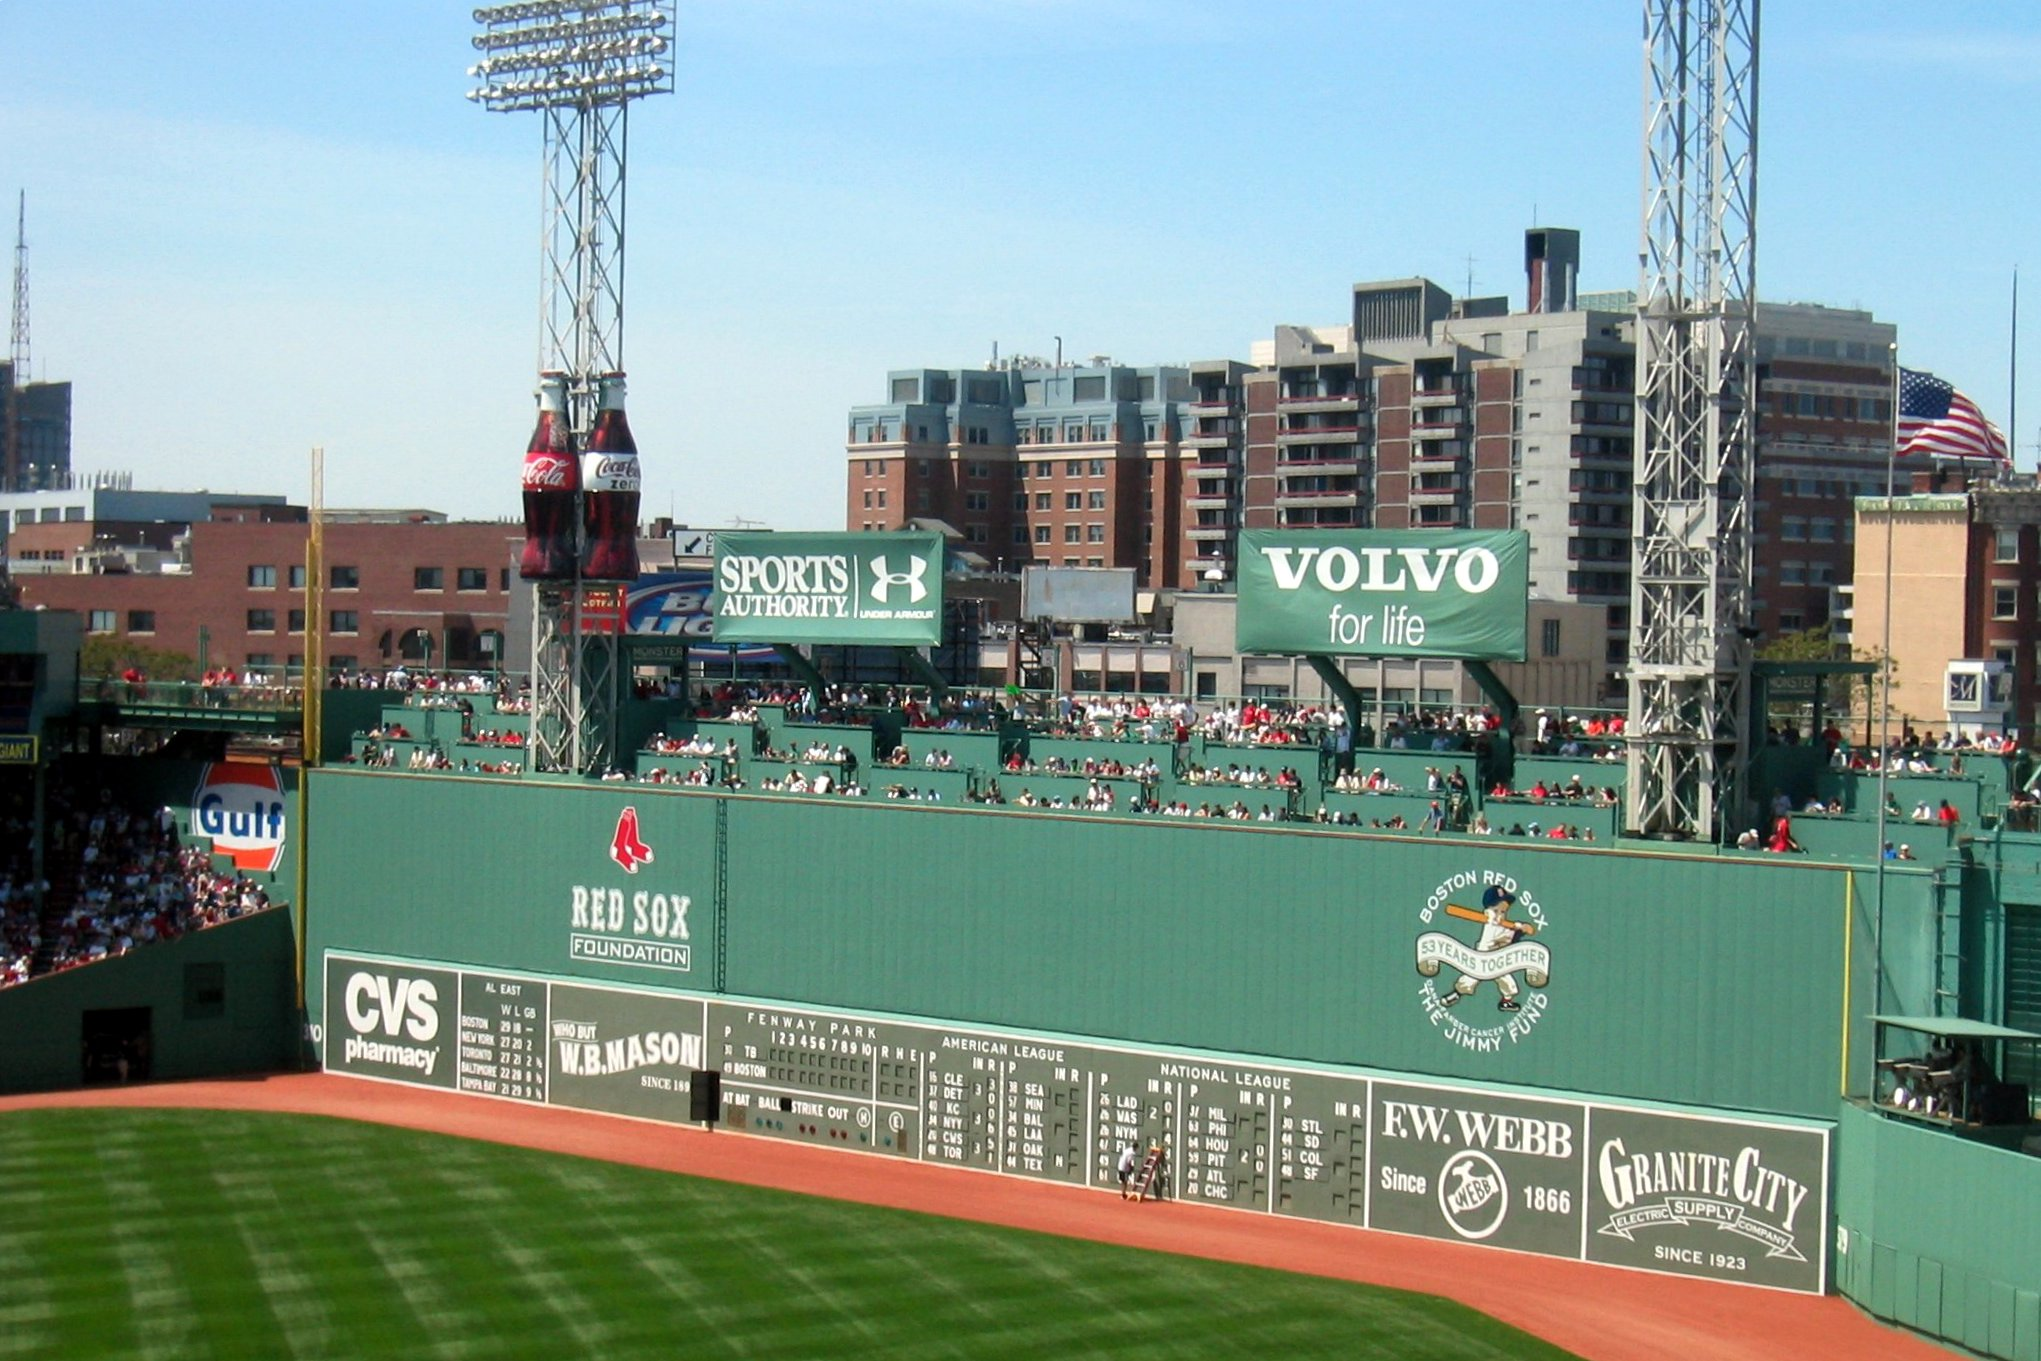 fenway park and parks - photo #24